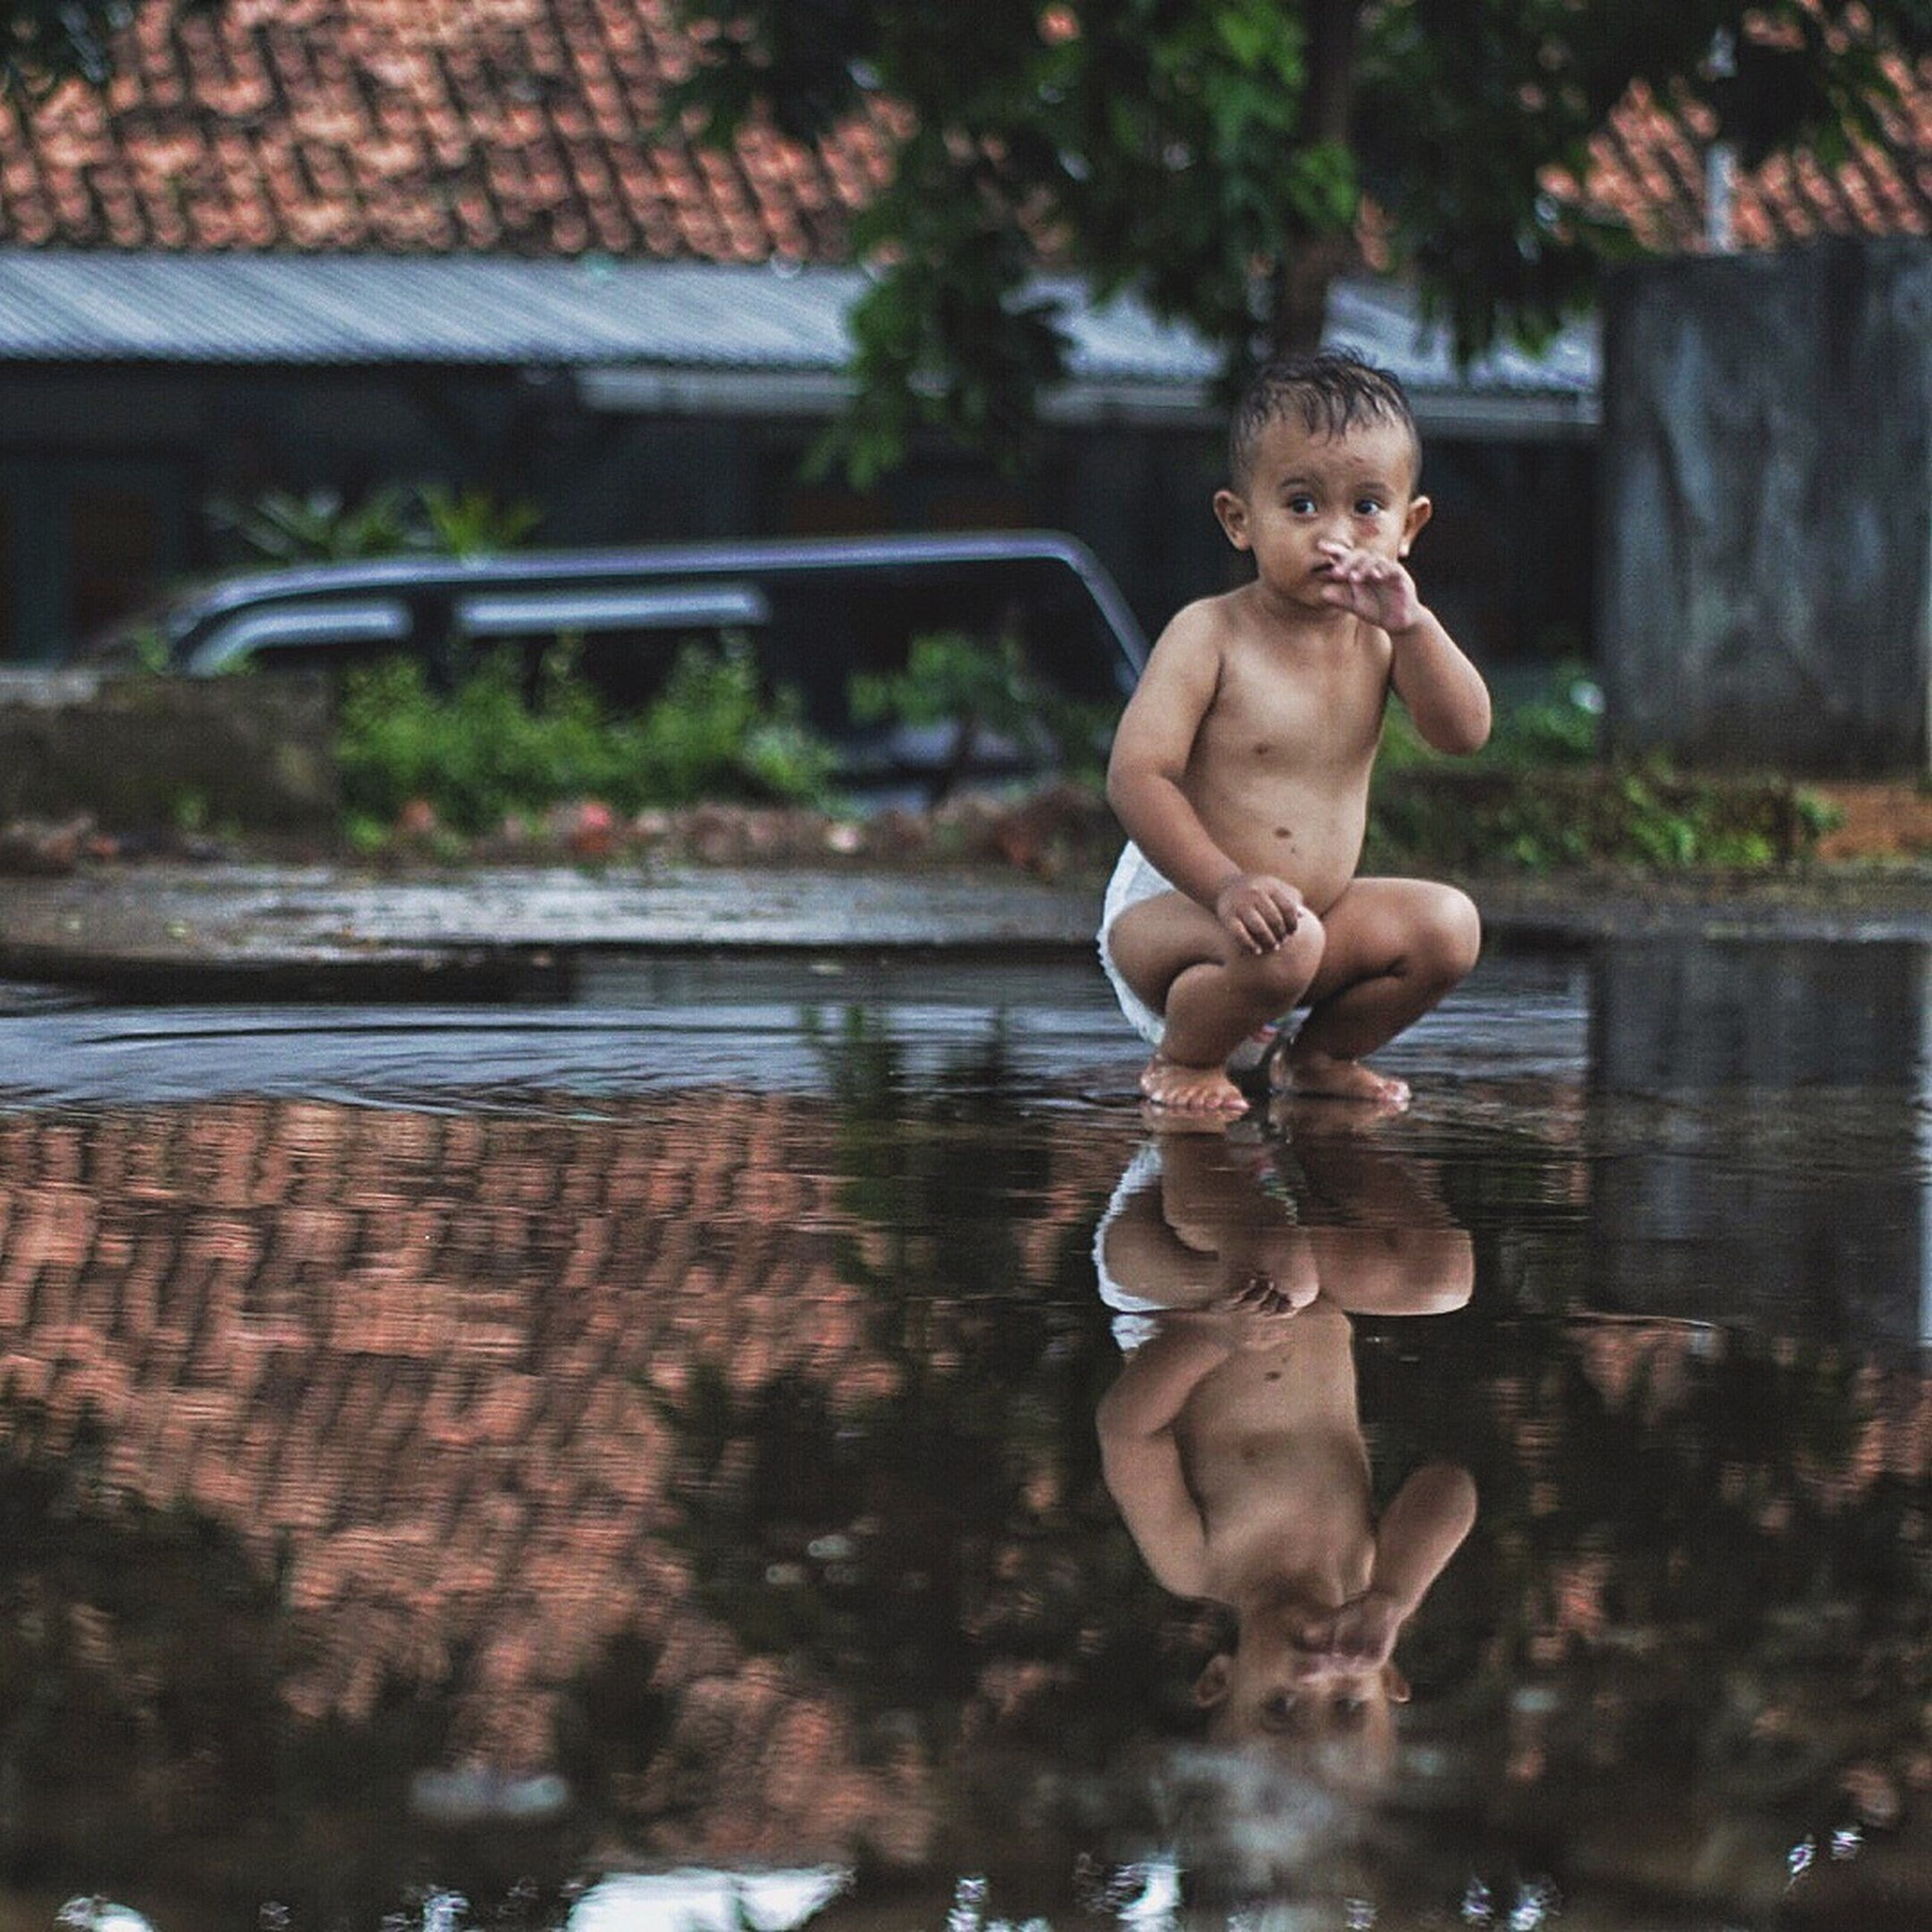 child, sitting, males, childhood, full length, outdoors, summer, one person, portrait, day, shirtless, people, nature, water